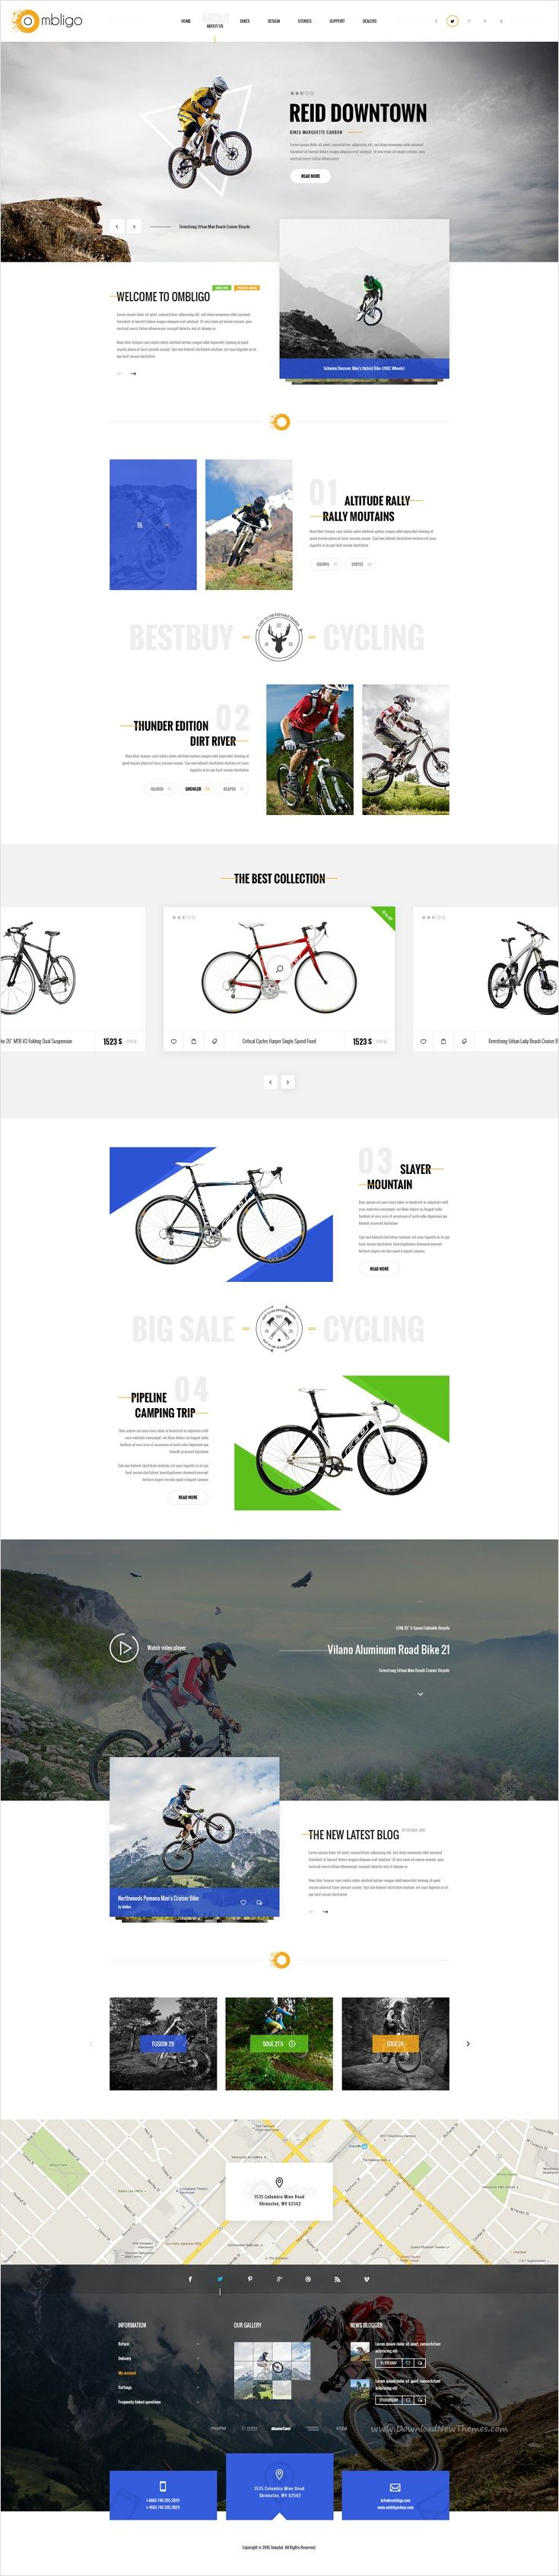 Ombligo shop is beautifully design premium #PSD #eCommerce #template for motorbike, #cycle or any transportation stores website with 6 unique homepage layouts and 30 organized PSD pages download now➩ https://themeforest.net/item/ombligo-shop-multi-concept-motor-cycle-psd-templates/18555304?ref=Datasata